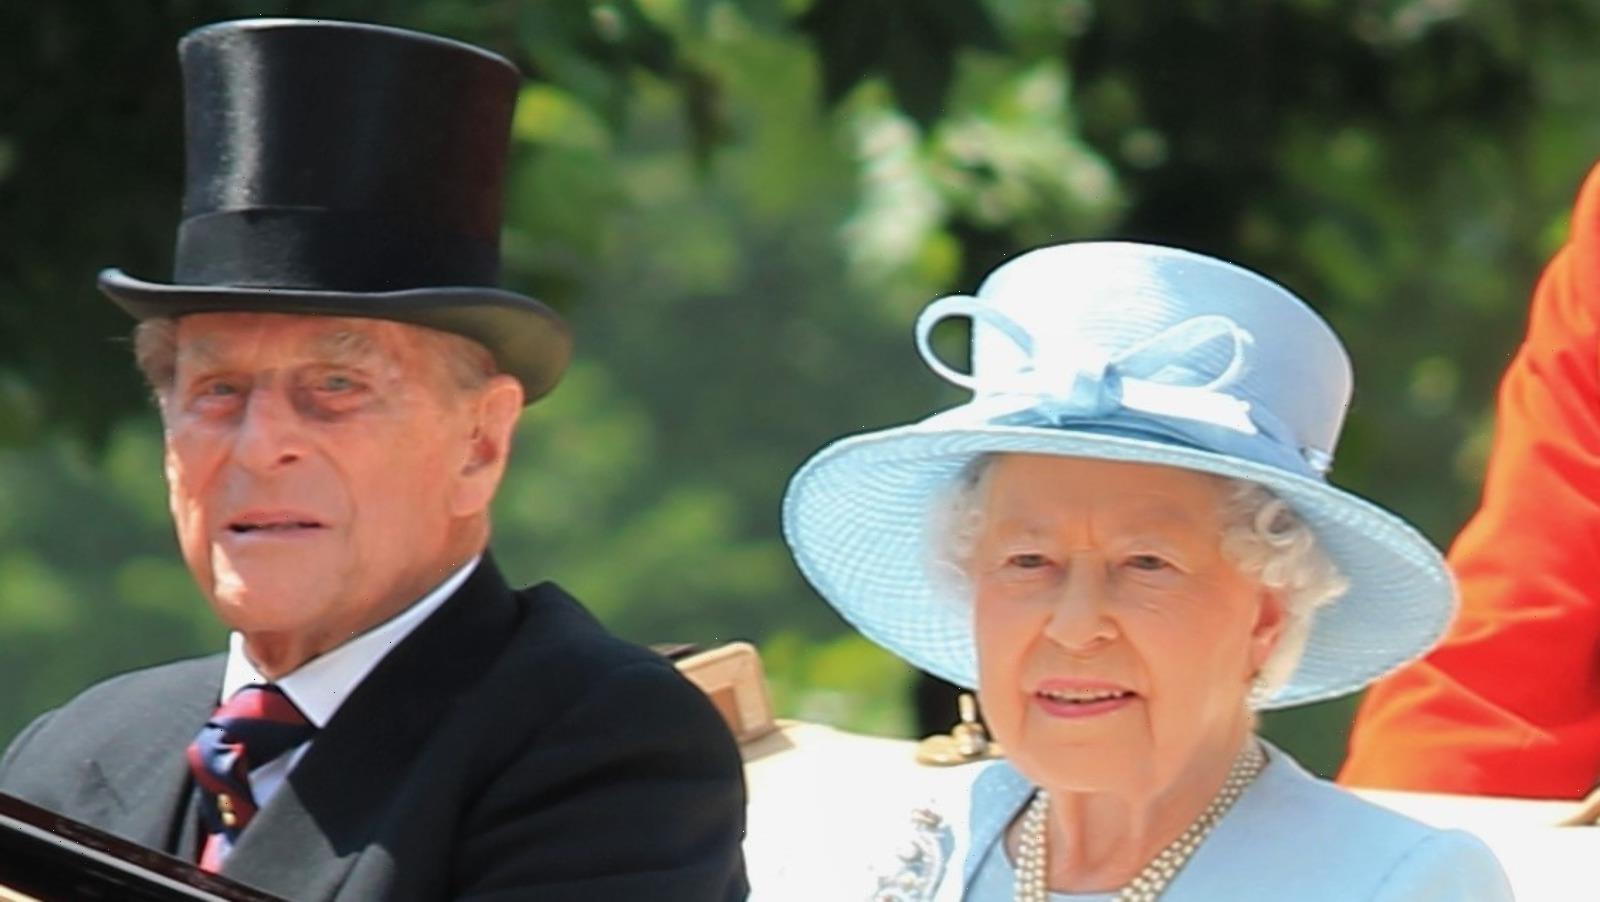 The Real Story Behind This Iconic Photo Of Queen Elizabeth And Prince Philip